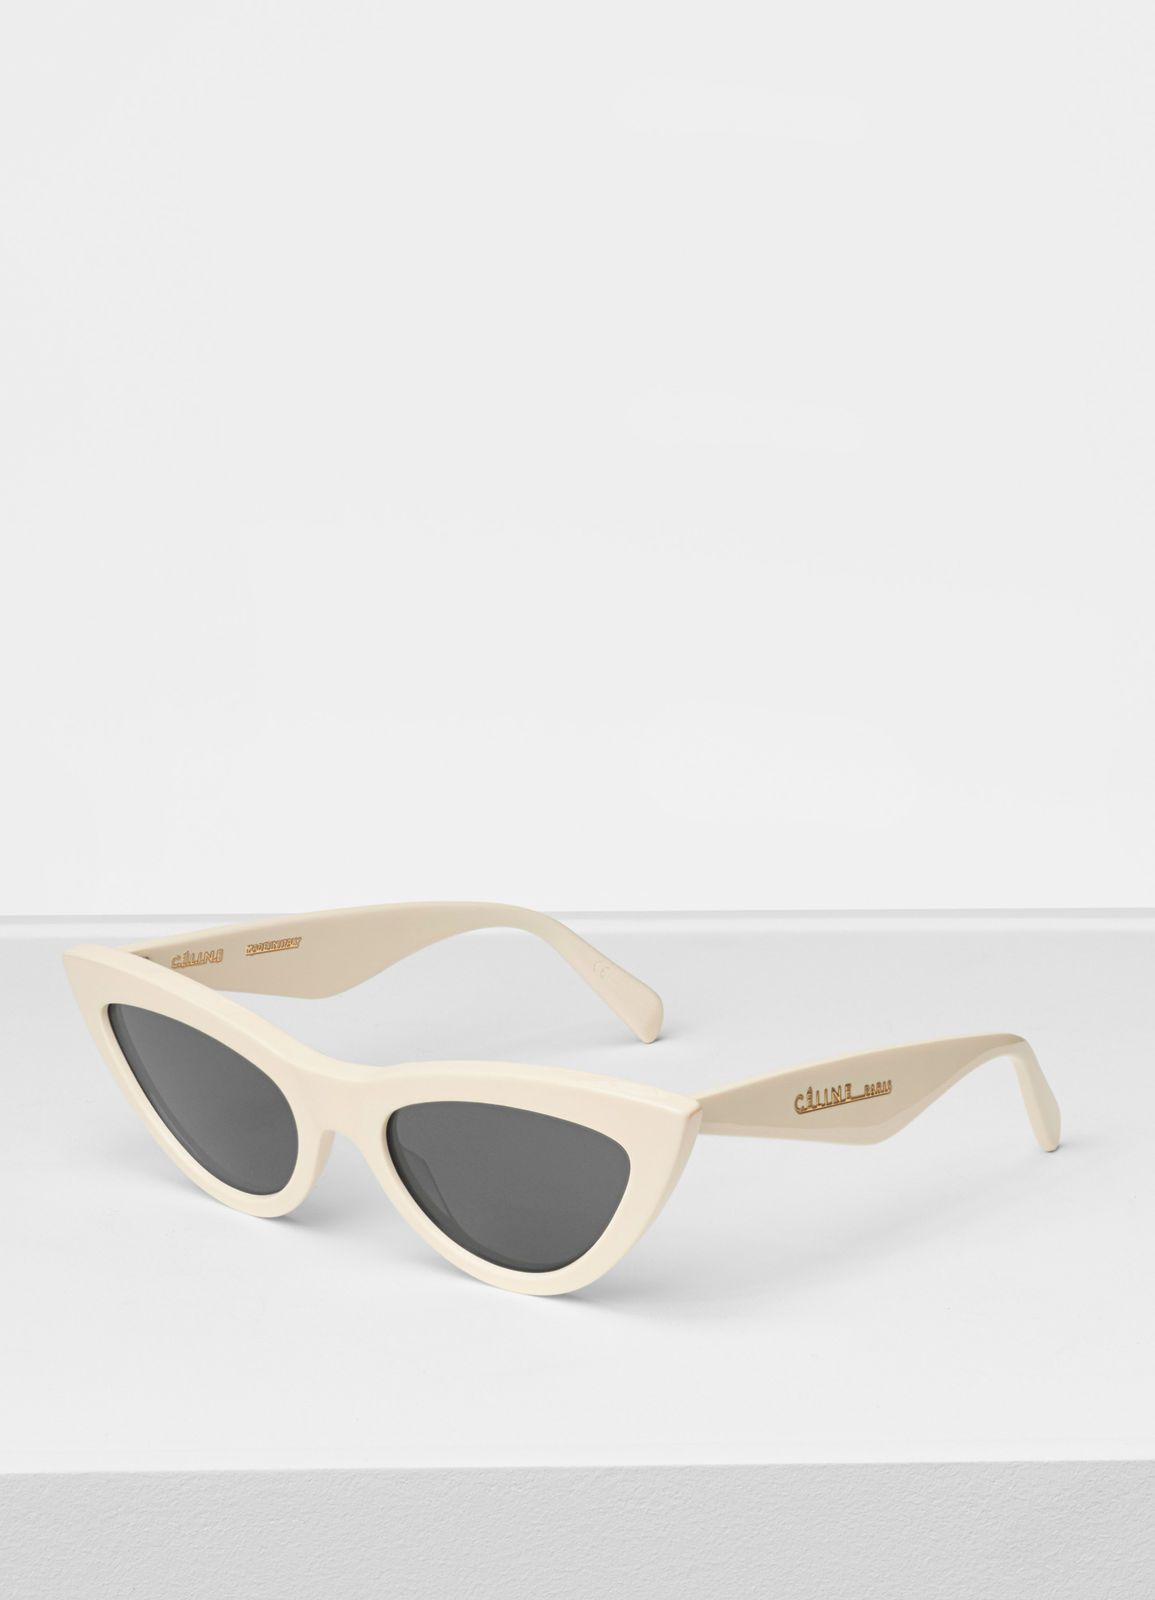 f43040e32b6e Céline - Ivory Cat Eye sunglasses in acetate | EYEWEAR in 2019 ...